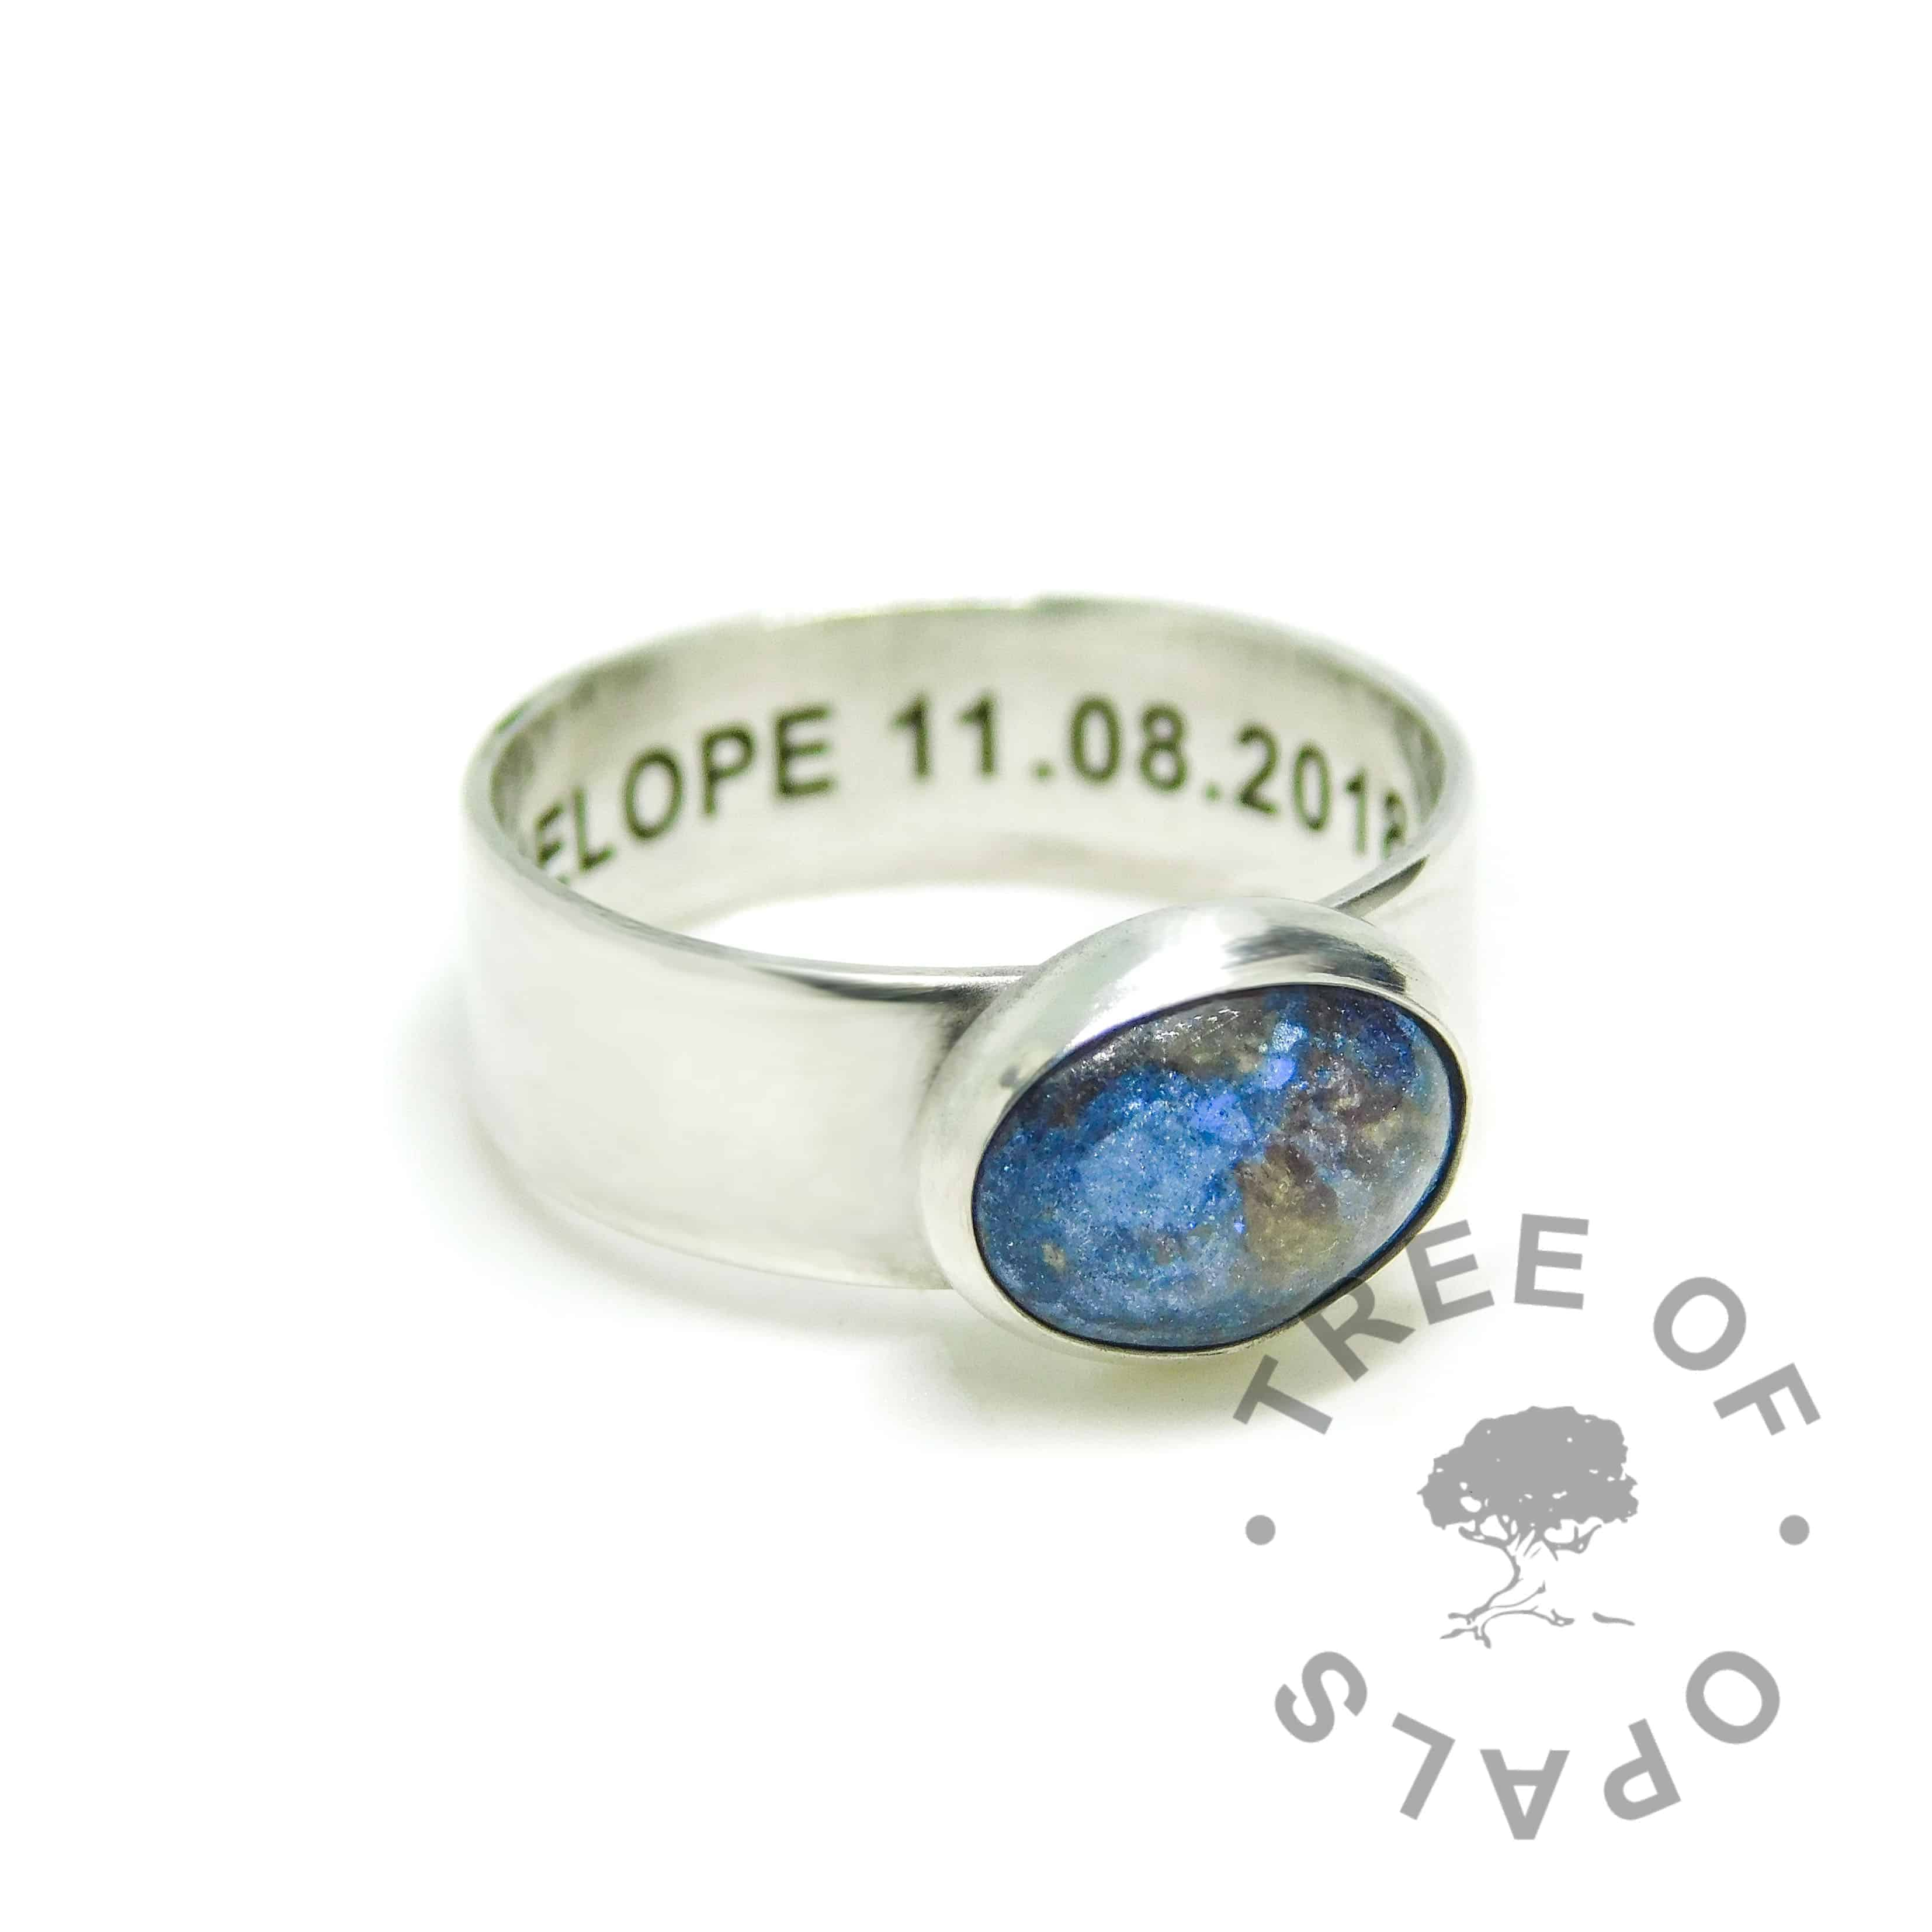 Aegean blue umbilical cord ring on 6mm shiny band. Solid 925 sterling EcoSilver handmade ring with engraved text on the inside of the band, in Arial font. 10x8mm bezel cup rubbed over the cabochon for security.